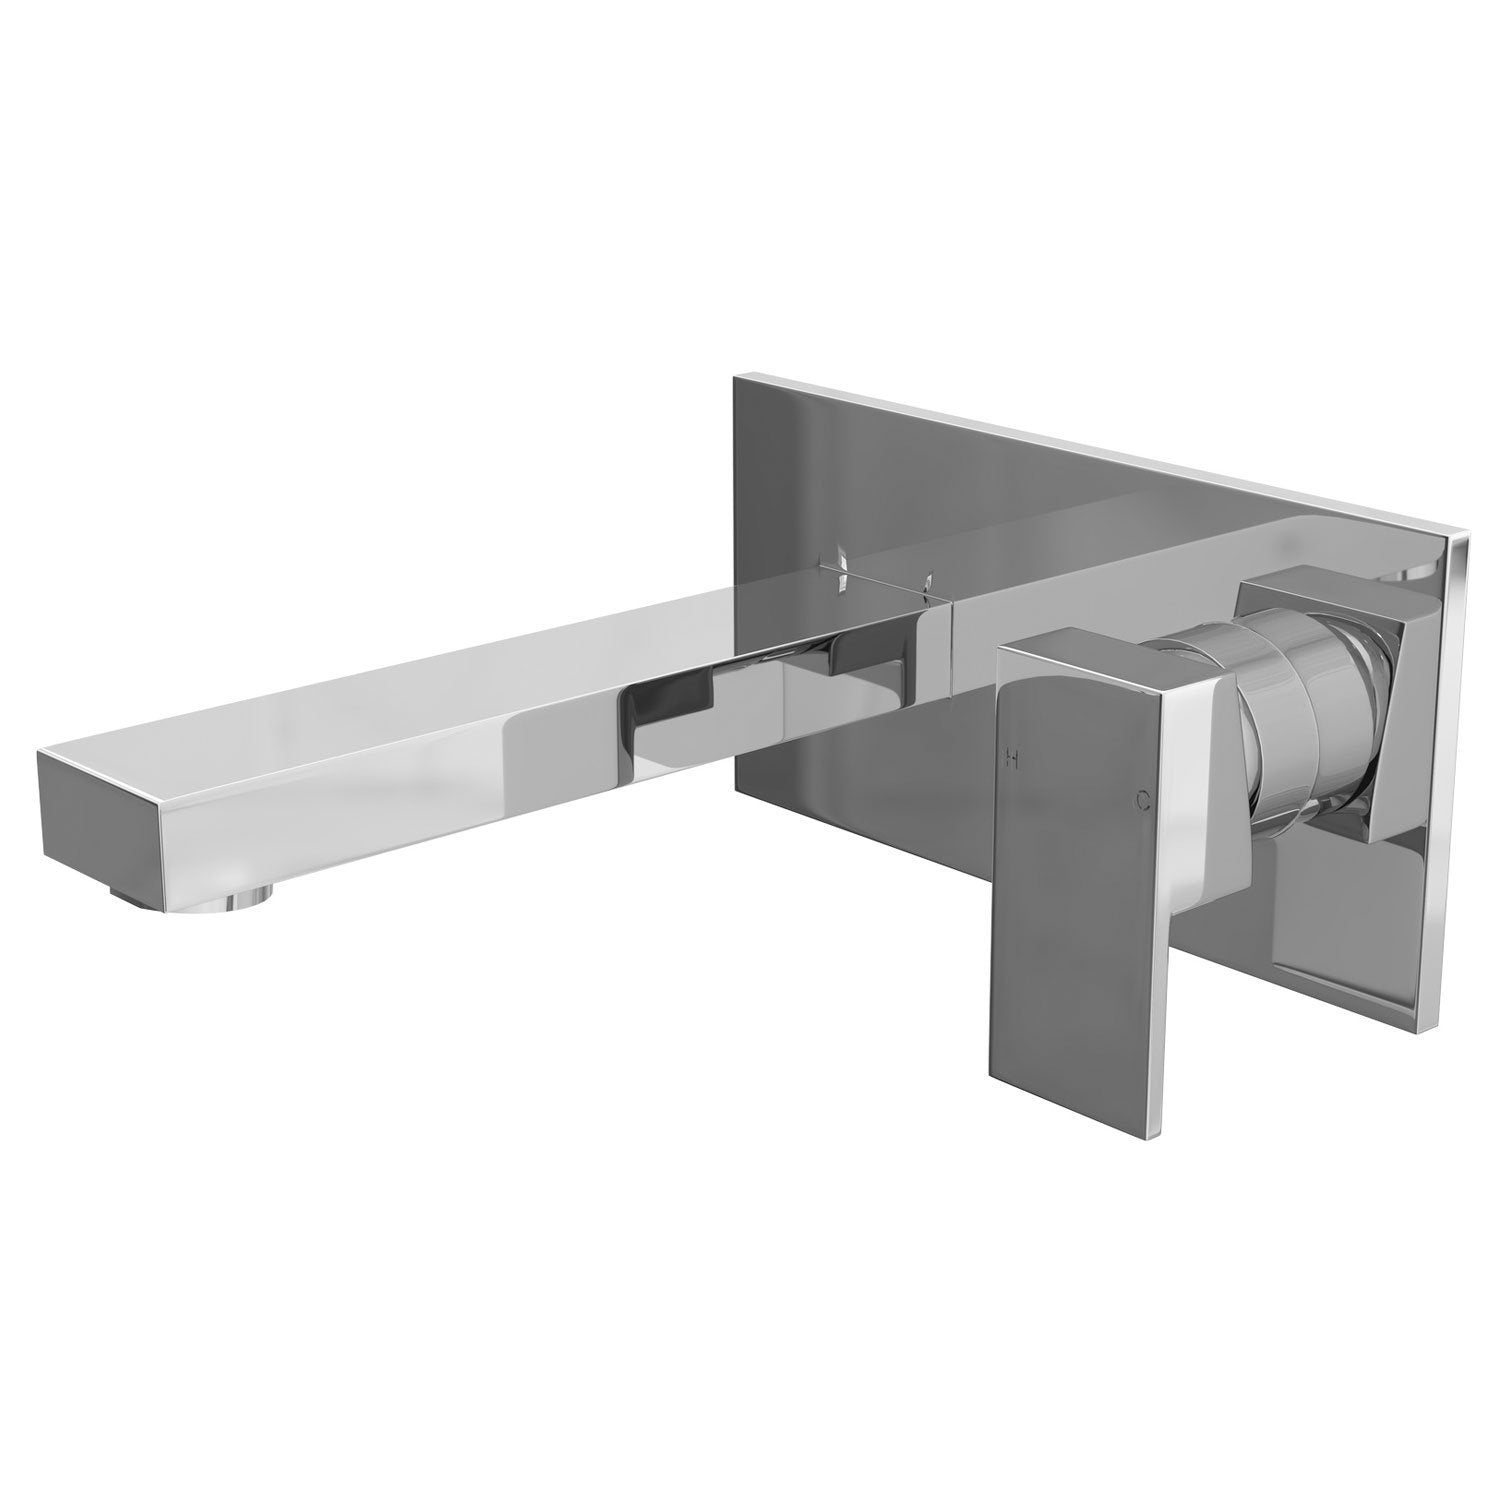 Cassellie Form Wall Mounted Basin Mixer Tap - Chrome